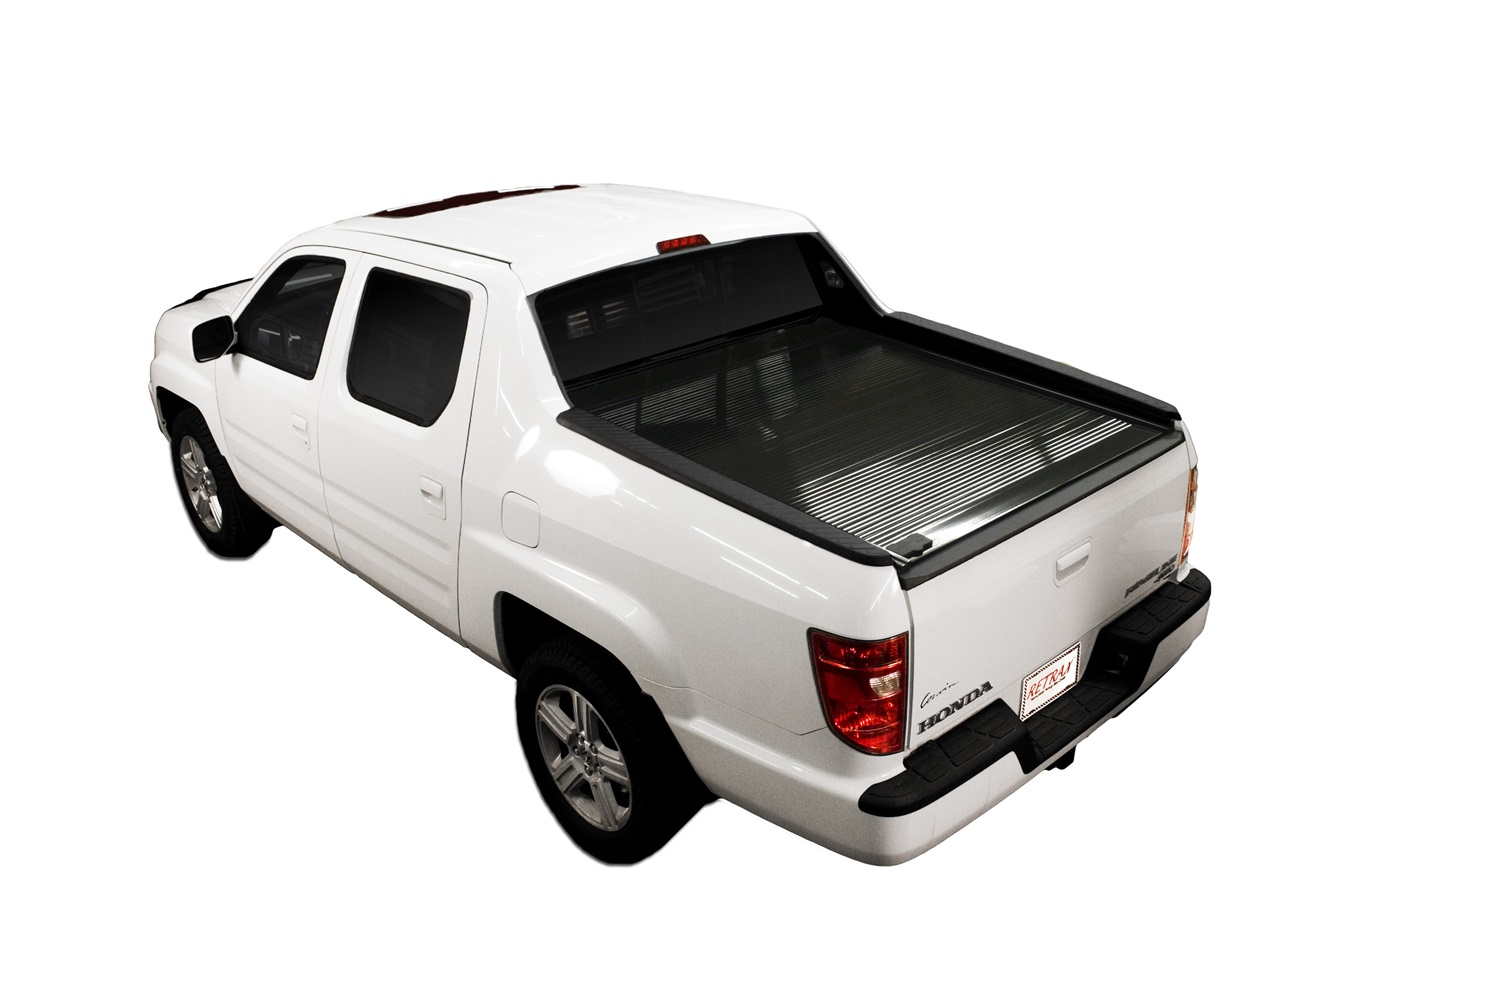 Retrax One Tonneau Cover - Retrax 10501